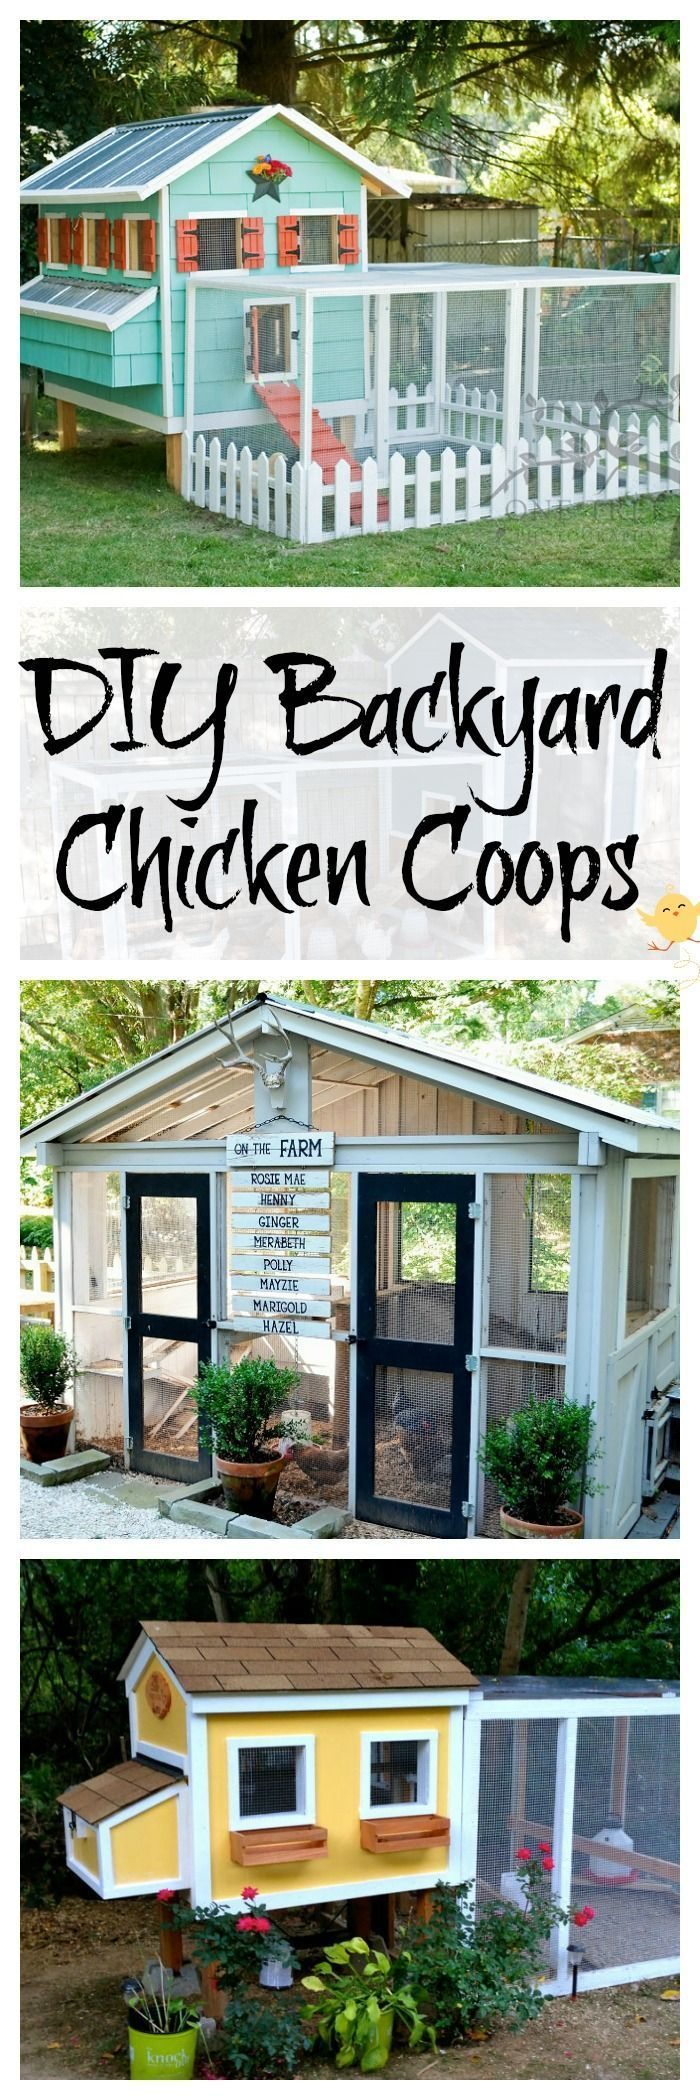 Tutorials and instructions for building your own DIY chicken coop in your backyard.